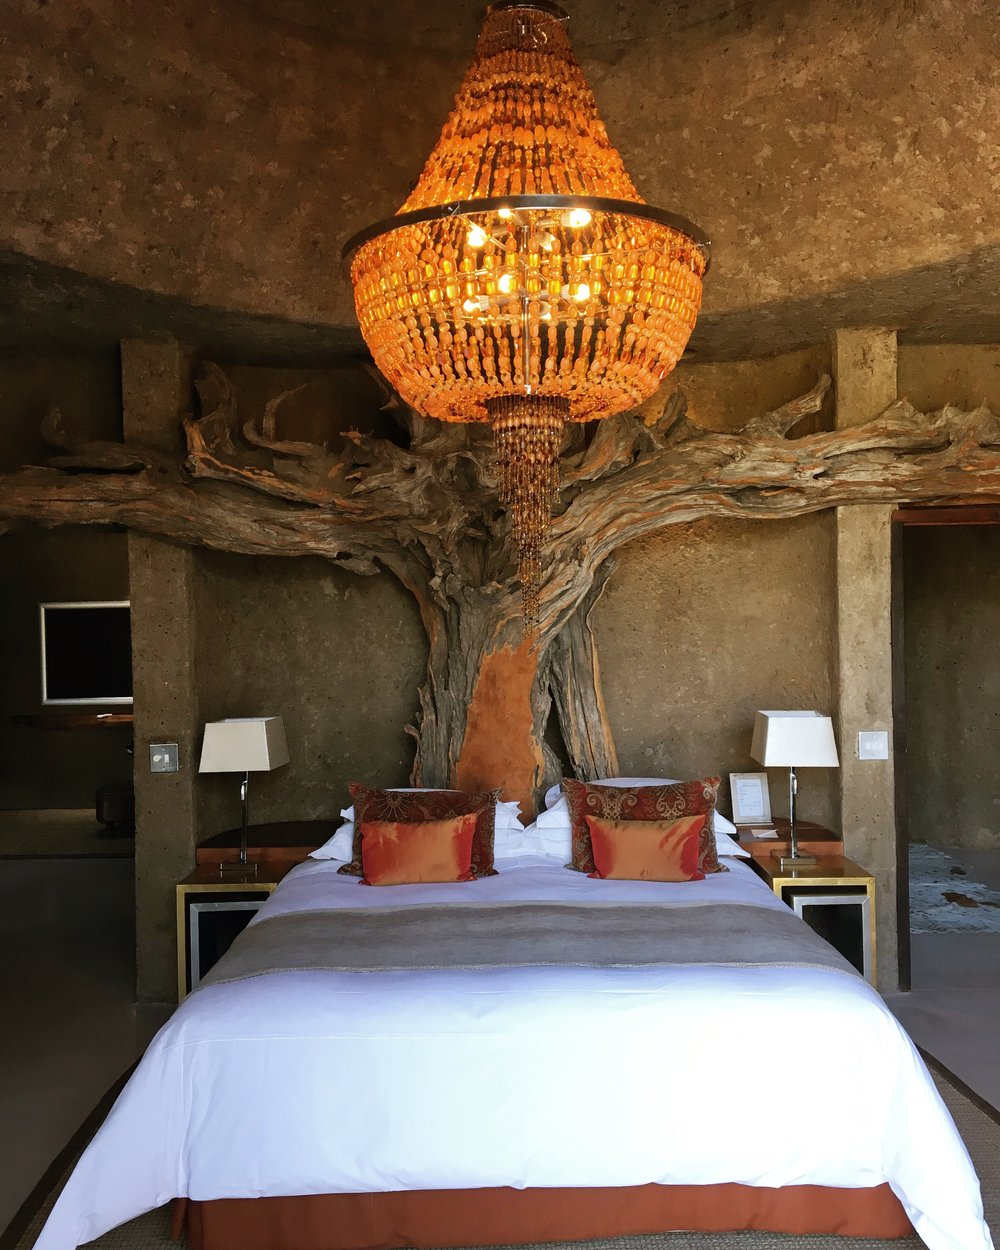 Earth Lodge / Sabi Sabi / South Africa